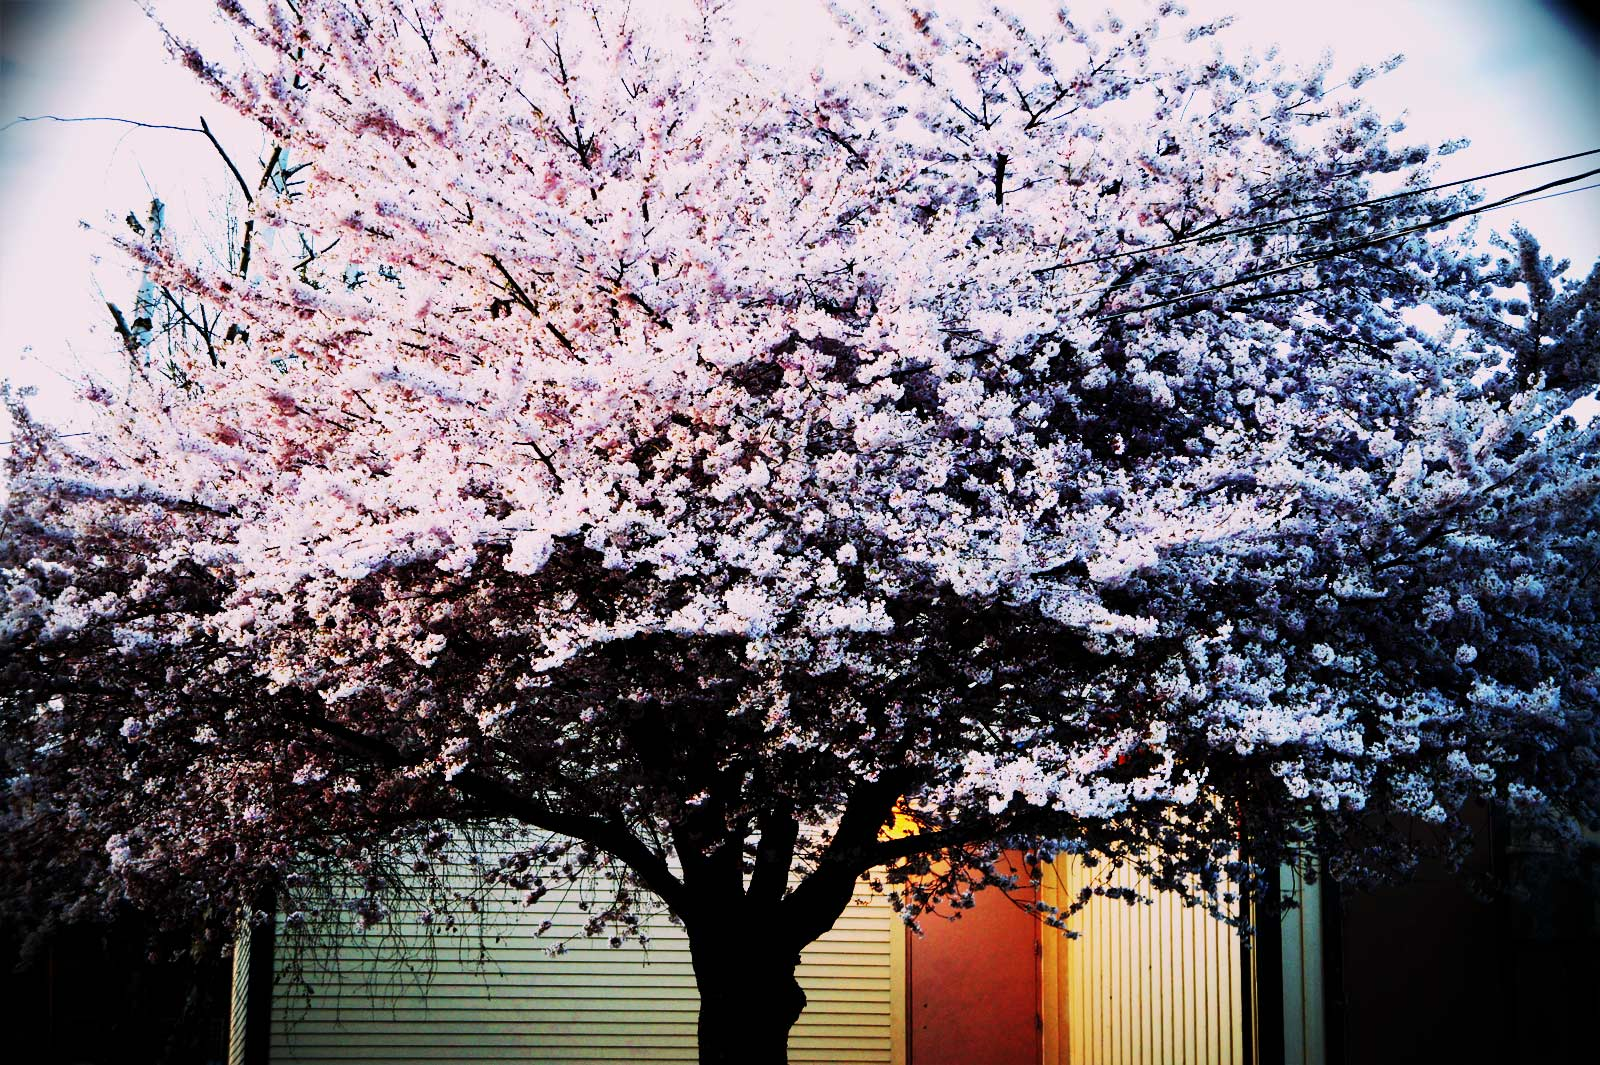 Cherry Tree at Dusk